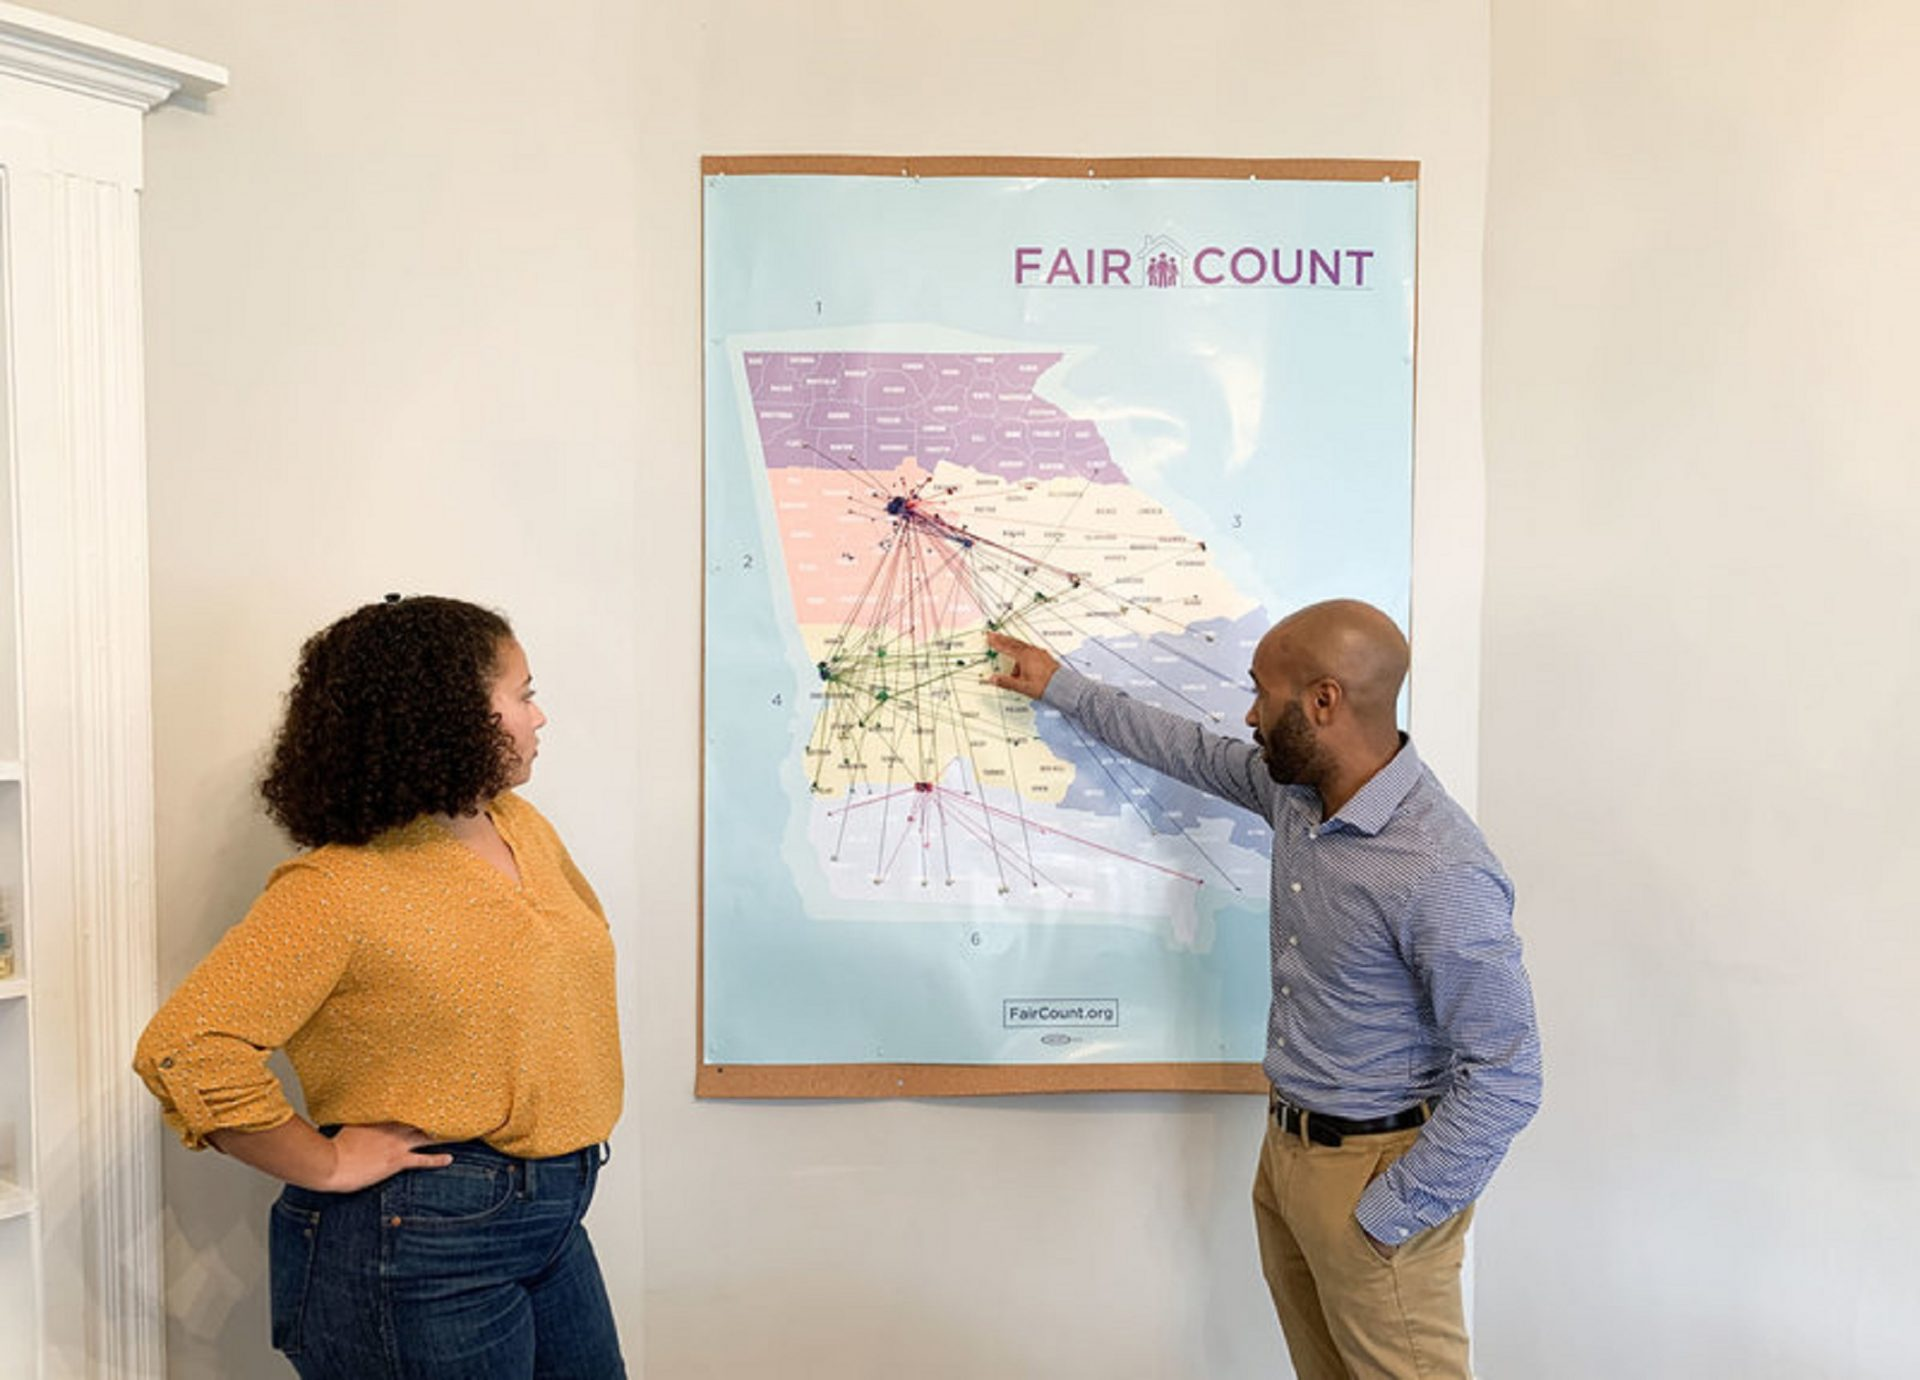 Ed Reed (right), Fair Count's program manager, and Djemanesh Aneteneh, an operations and events administrator, look over a map showing the Wi-Fi hotspots the group has installed around Georgia.